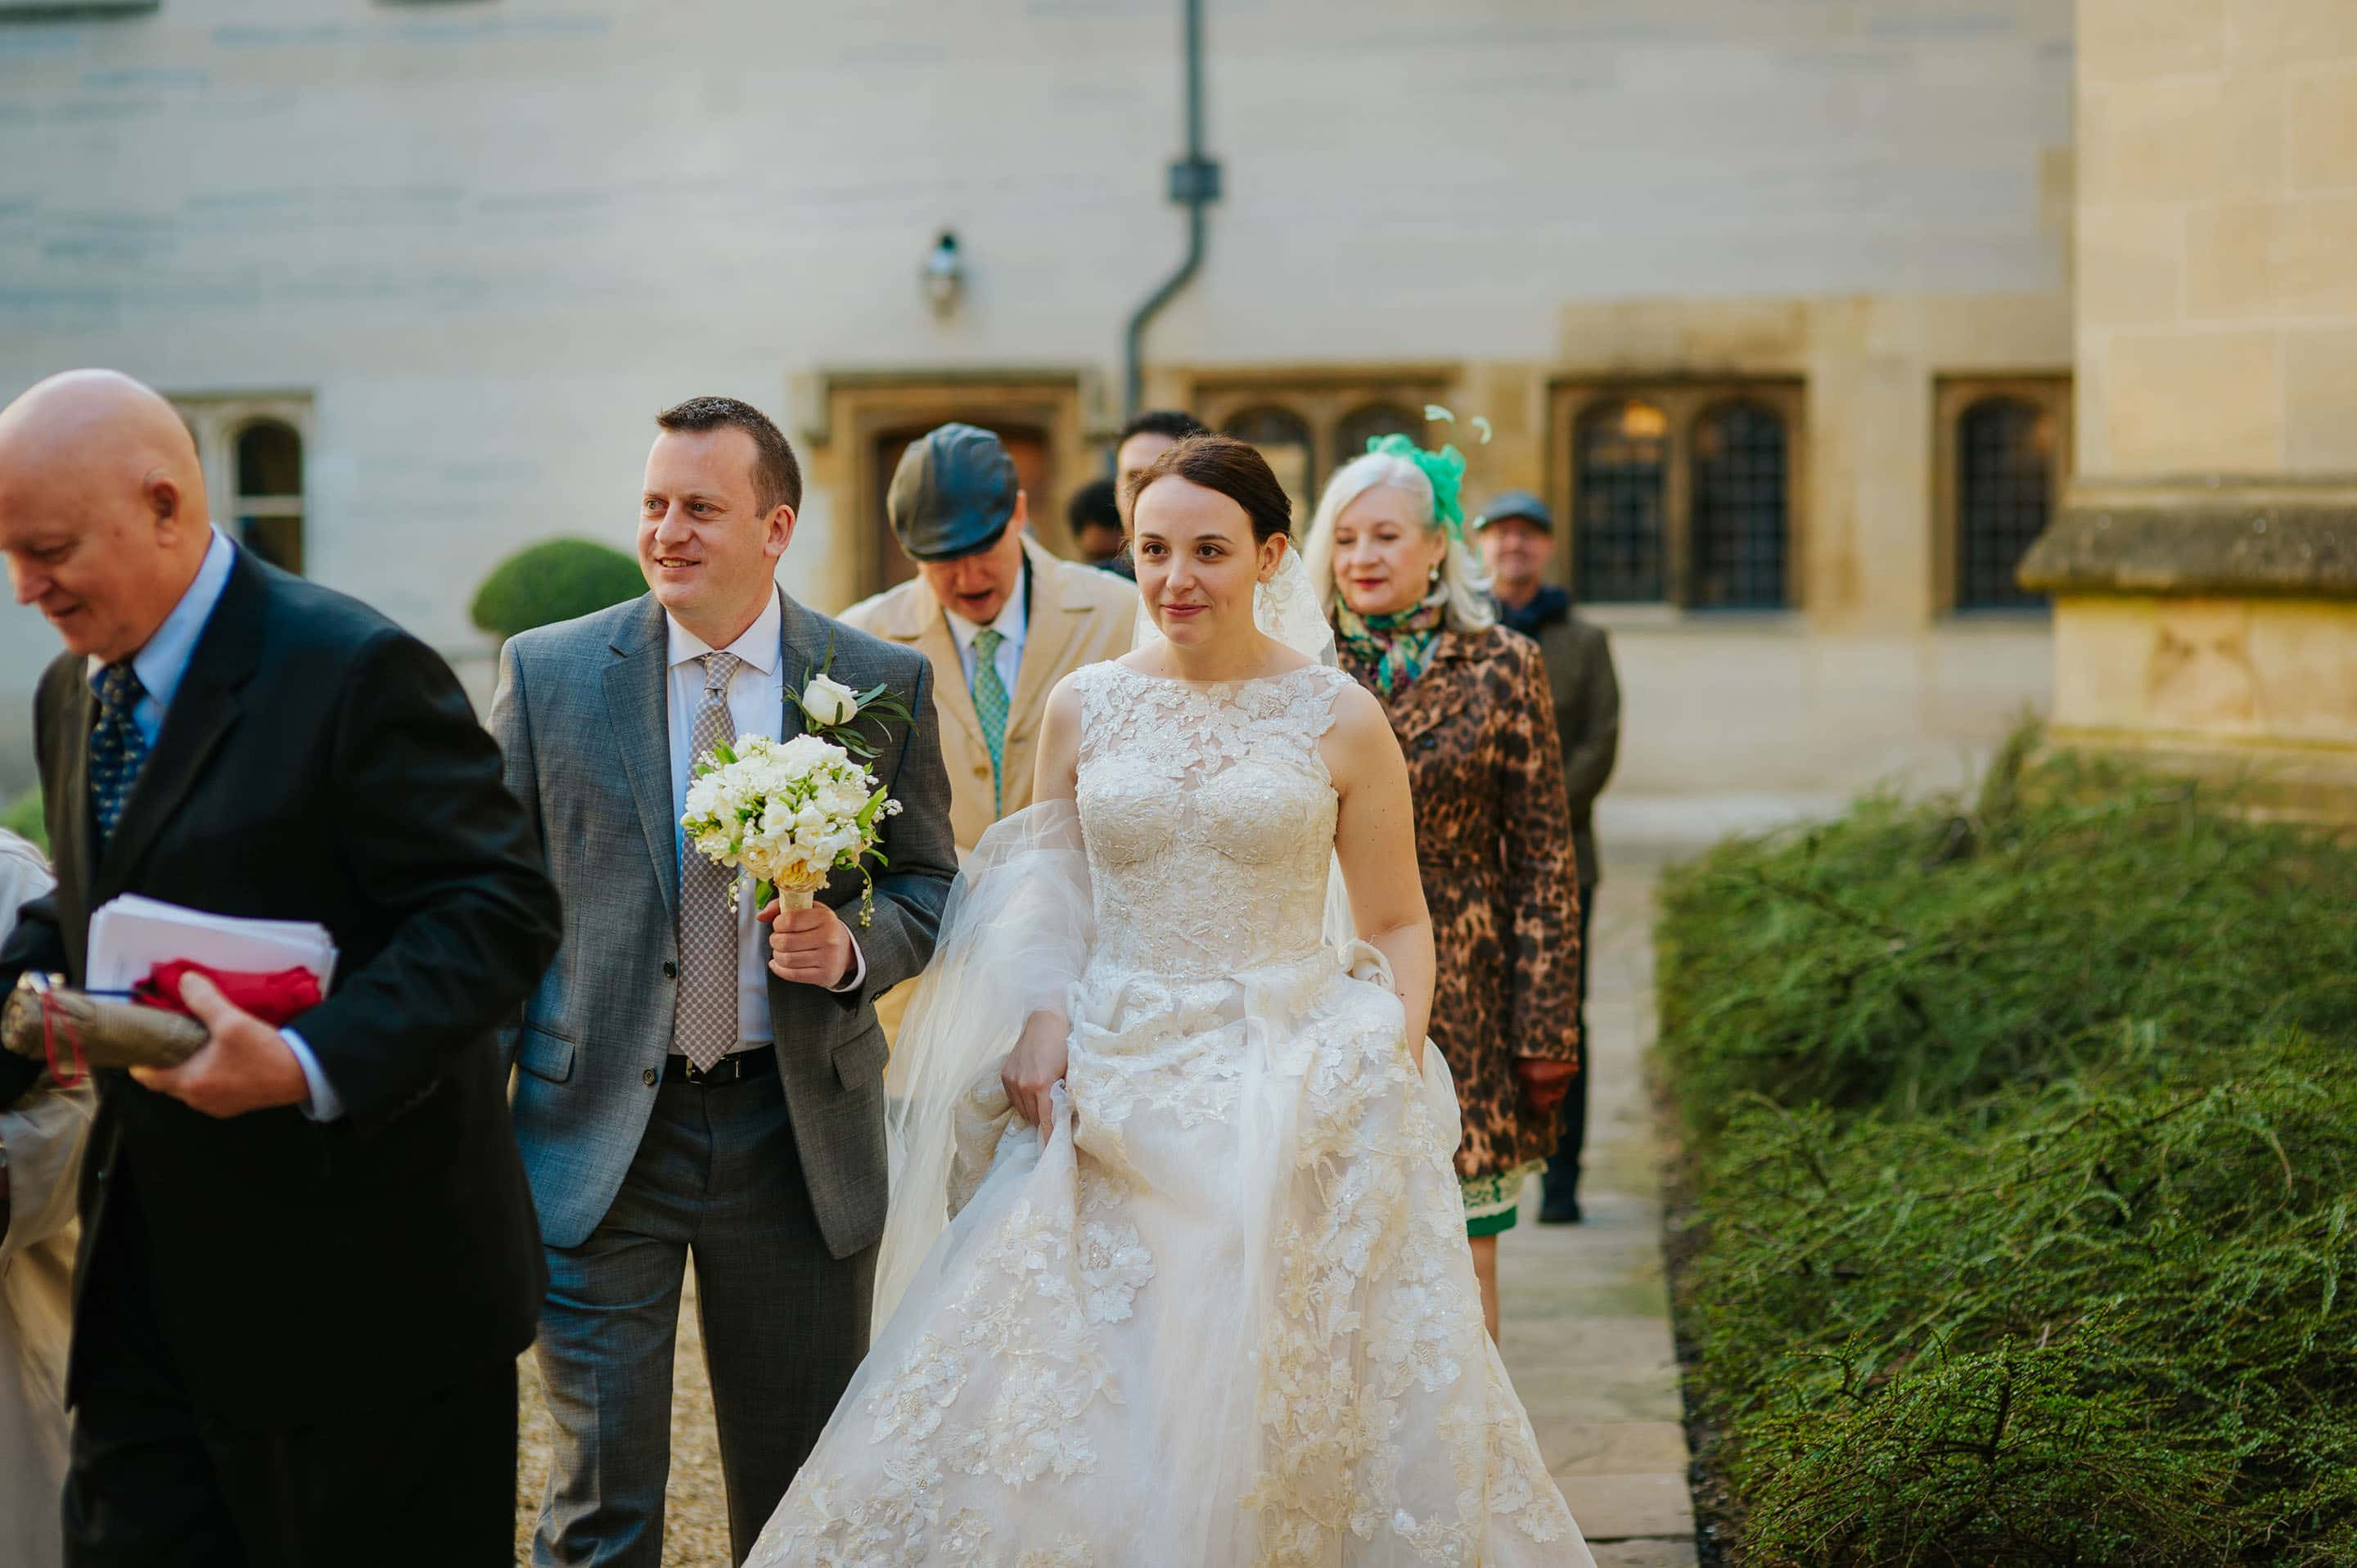 wedding at magdalen college in oxford 42 - Tommie + Virginia | Wedding at Magdalen College in Oxford